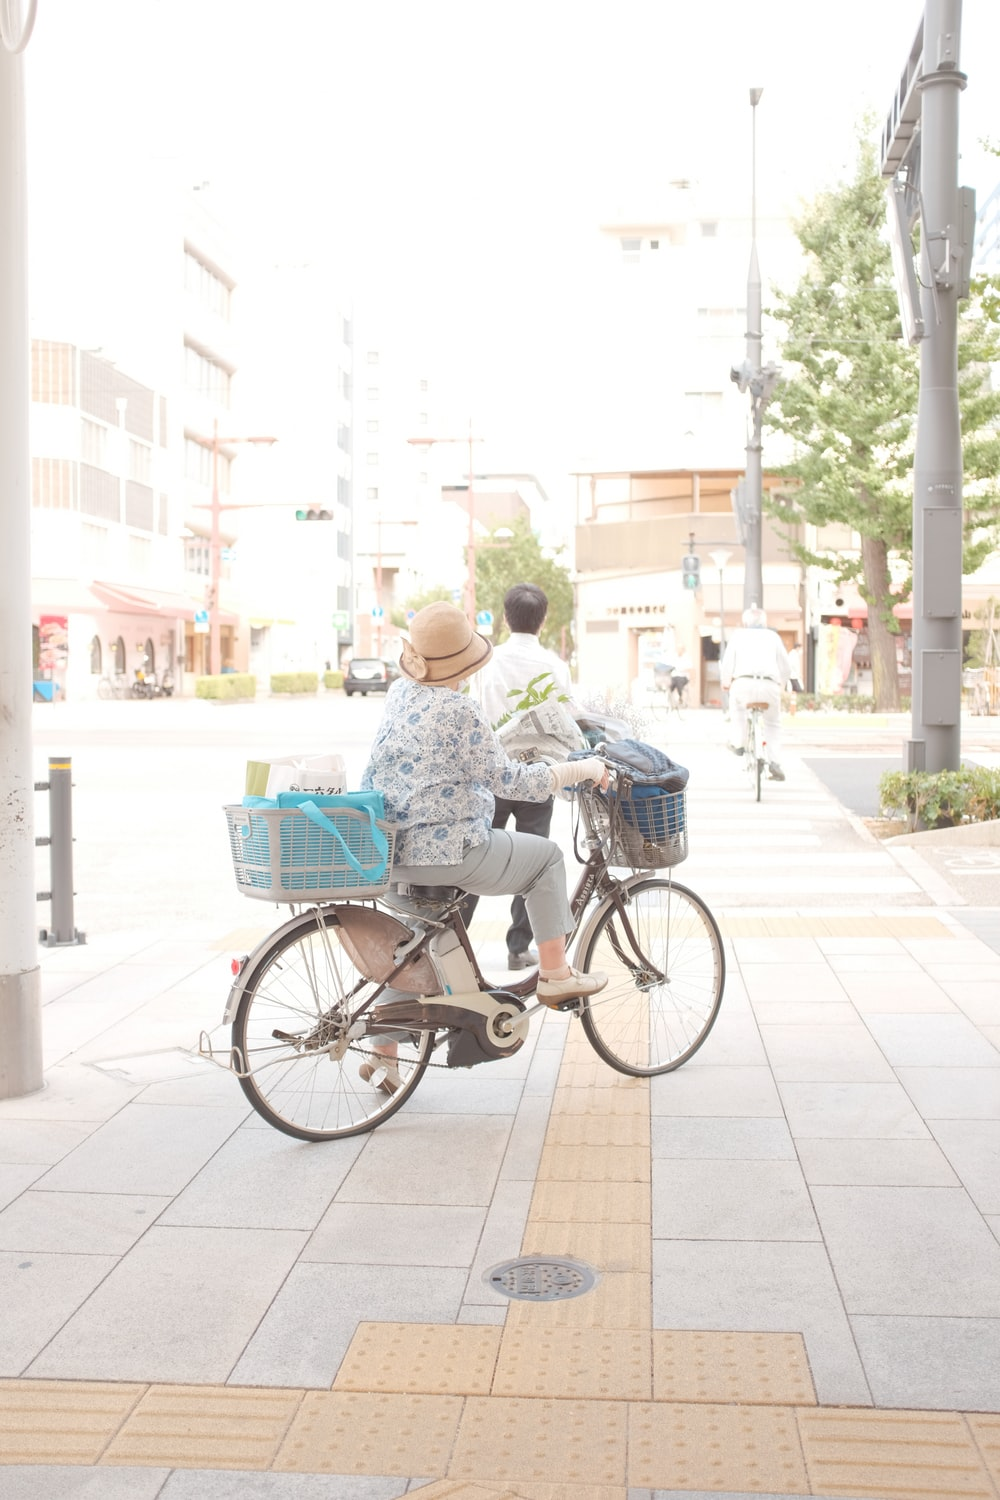 man in blue and white floral shirt riding on black city bicycle during daytime